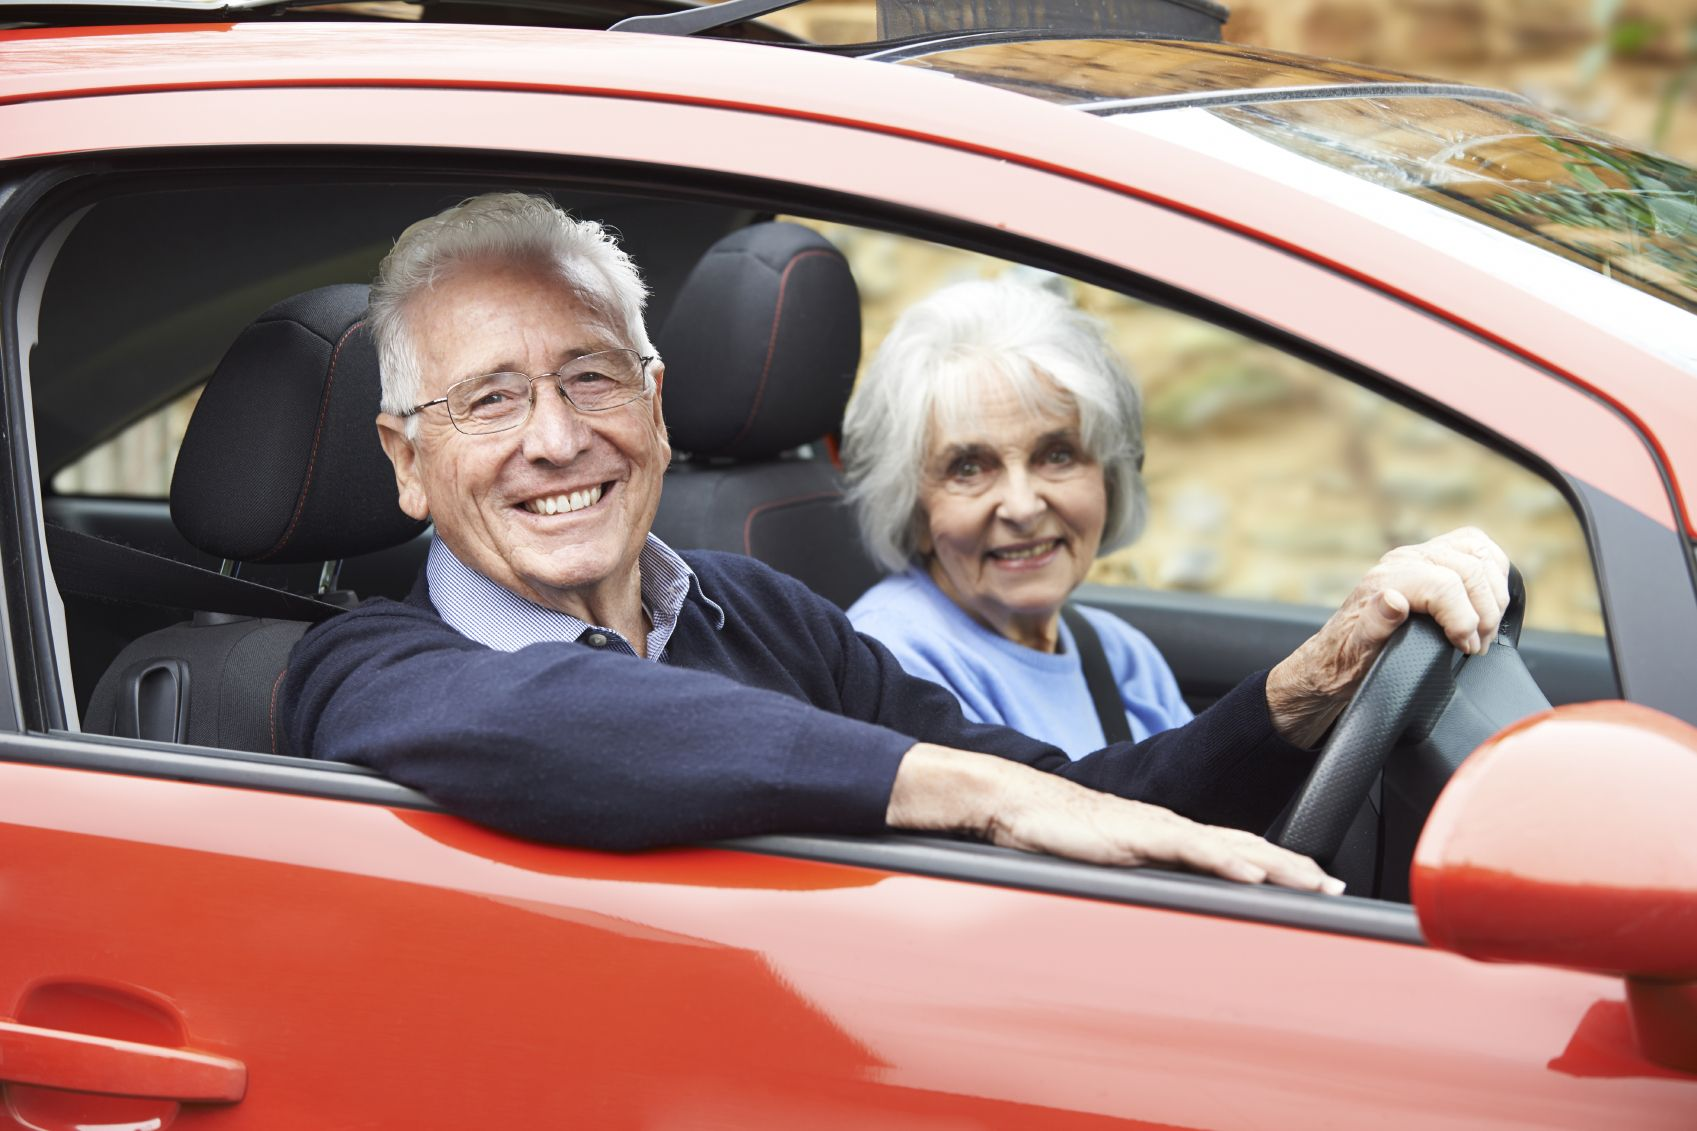 older people driving in car Google leit (With images